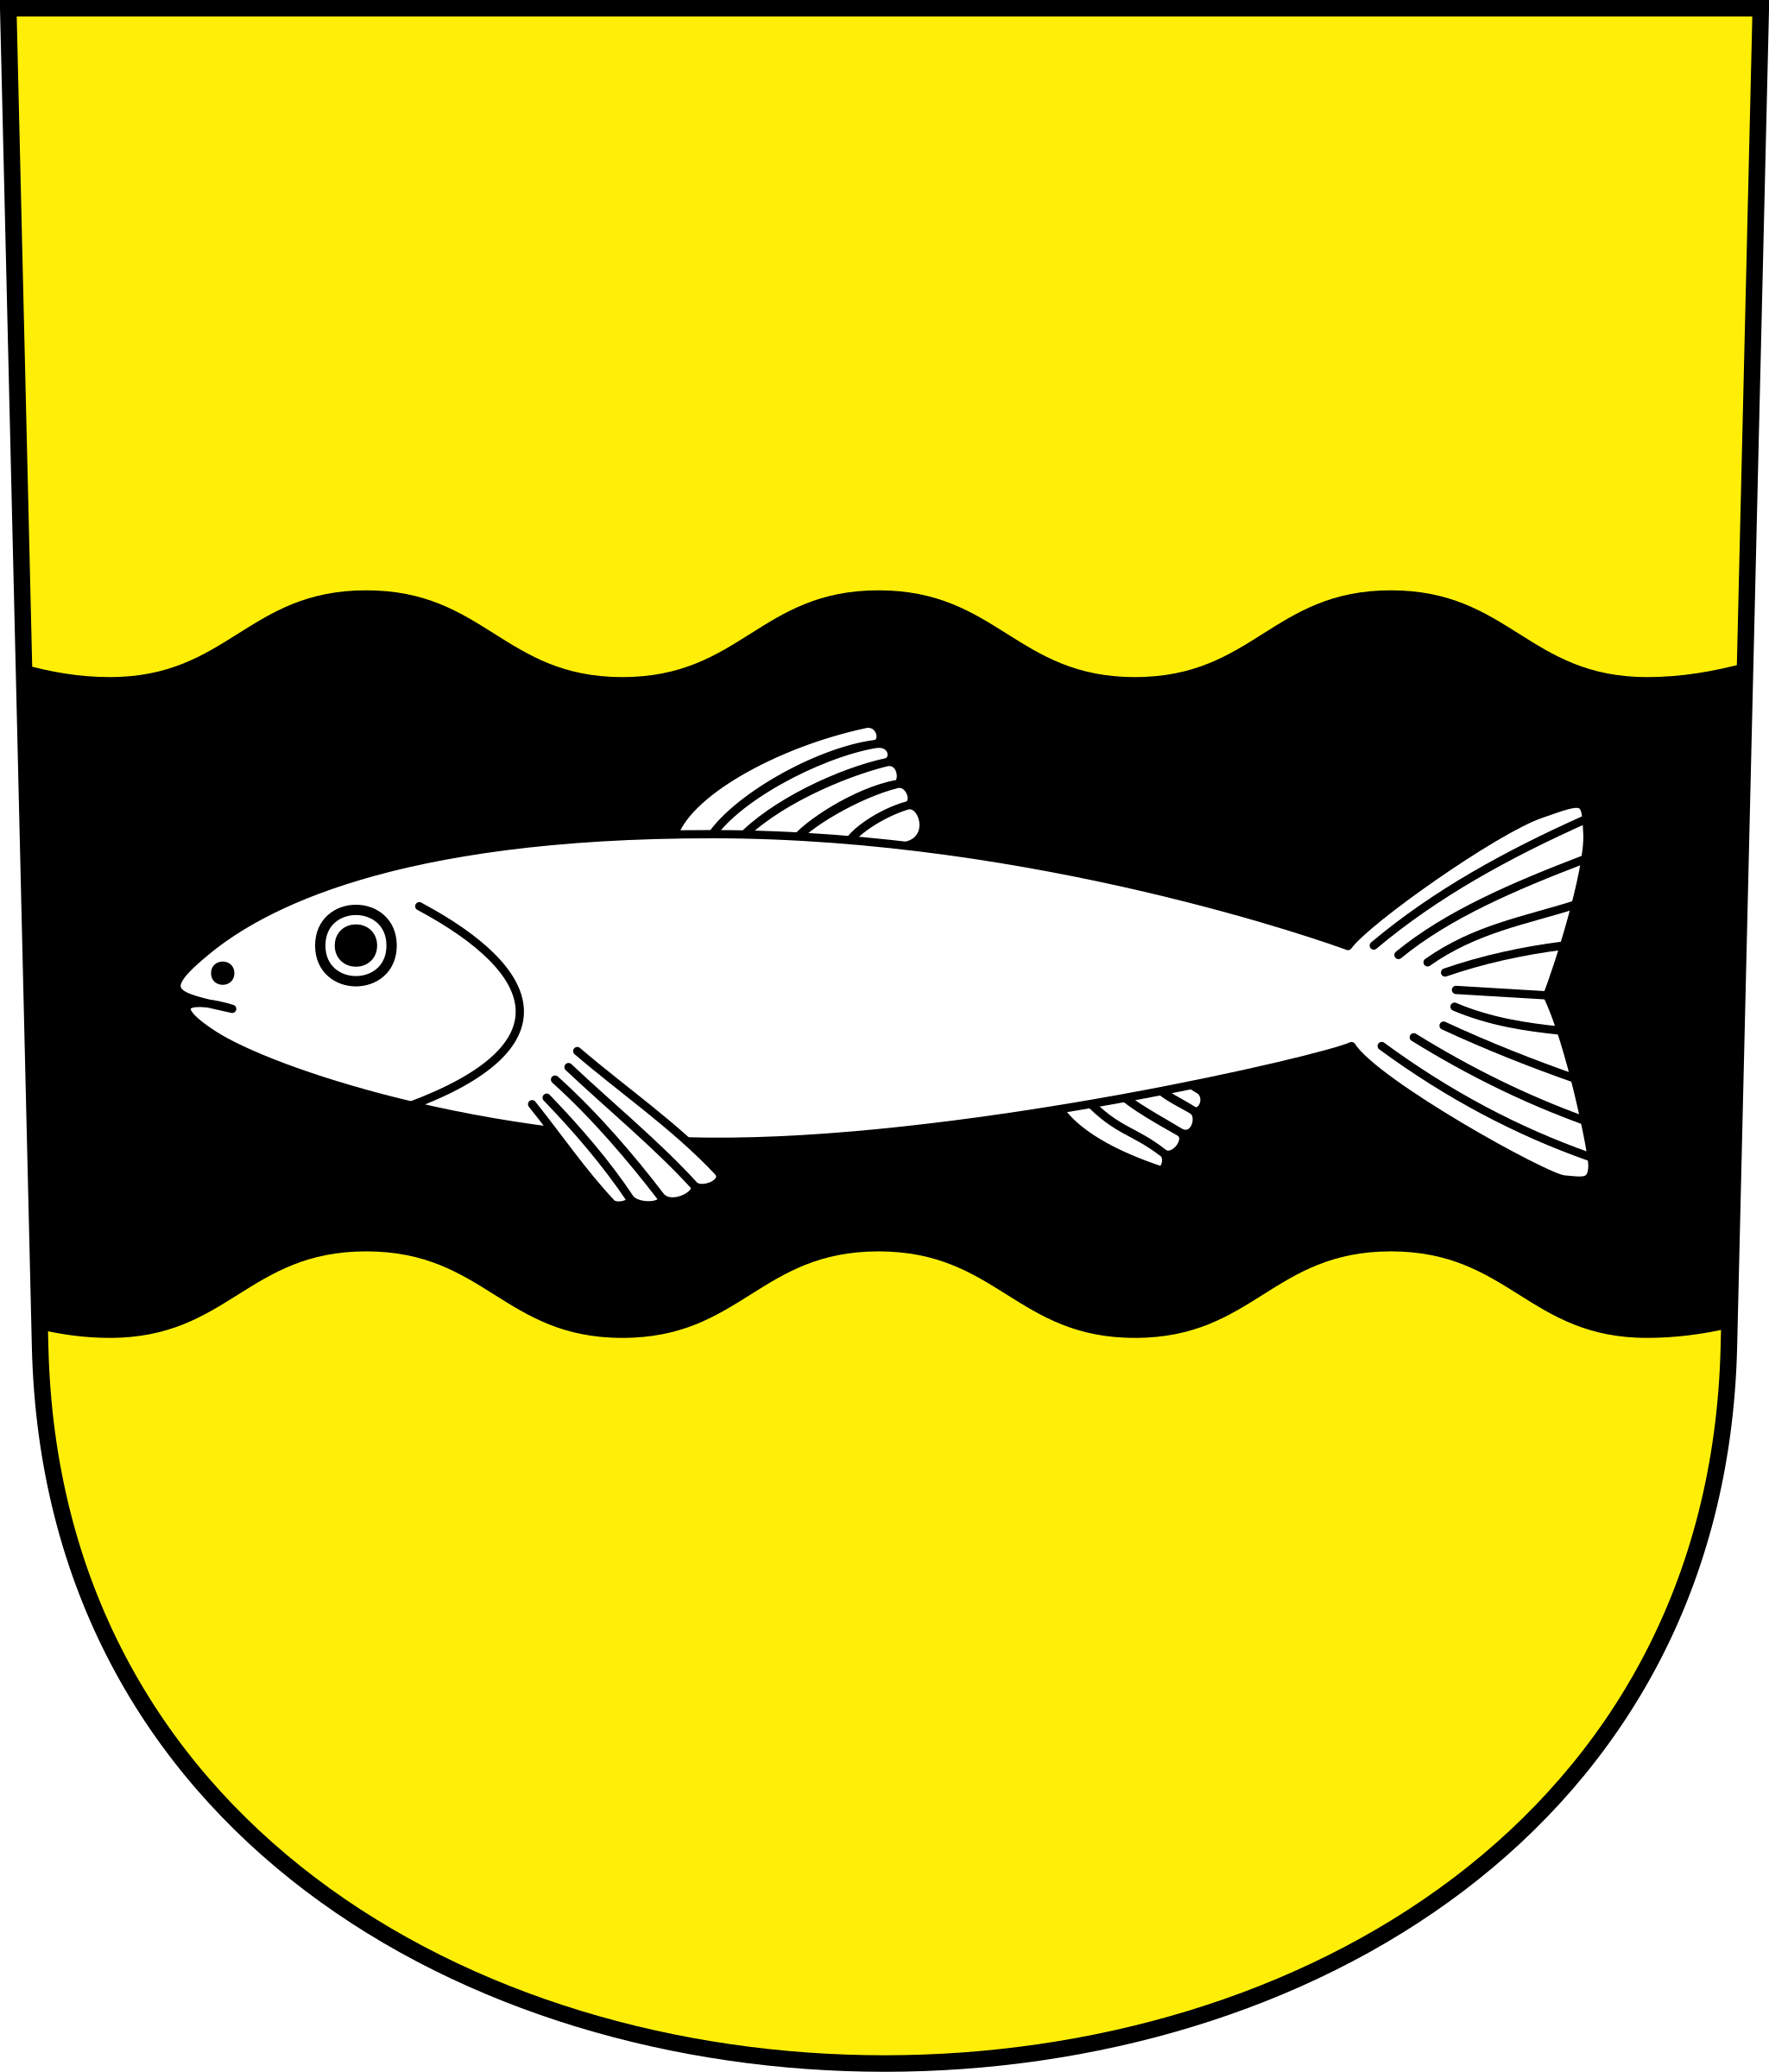 Schwerzenbach - Coat of arms by wipp